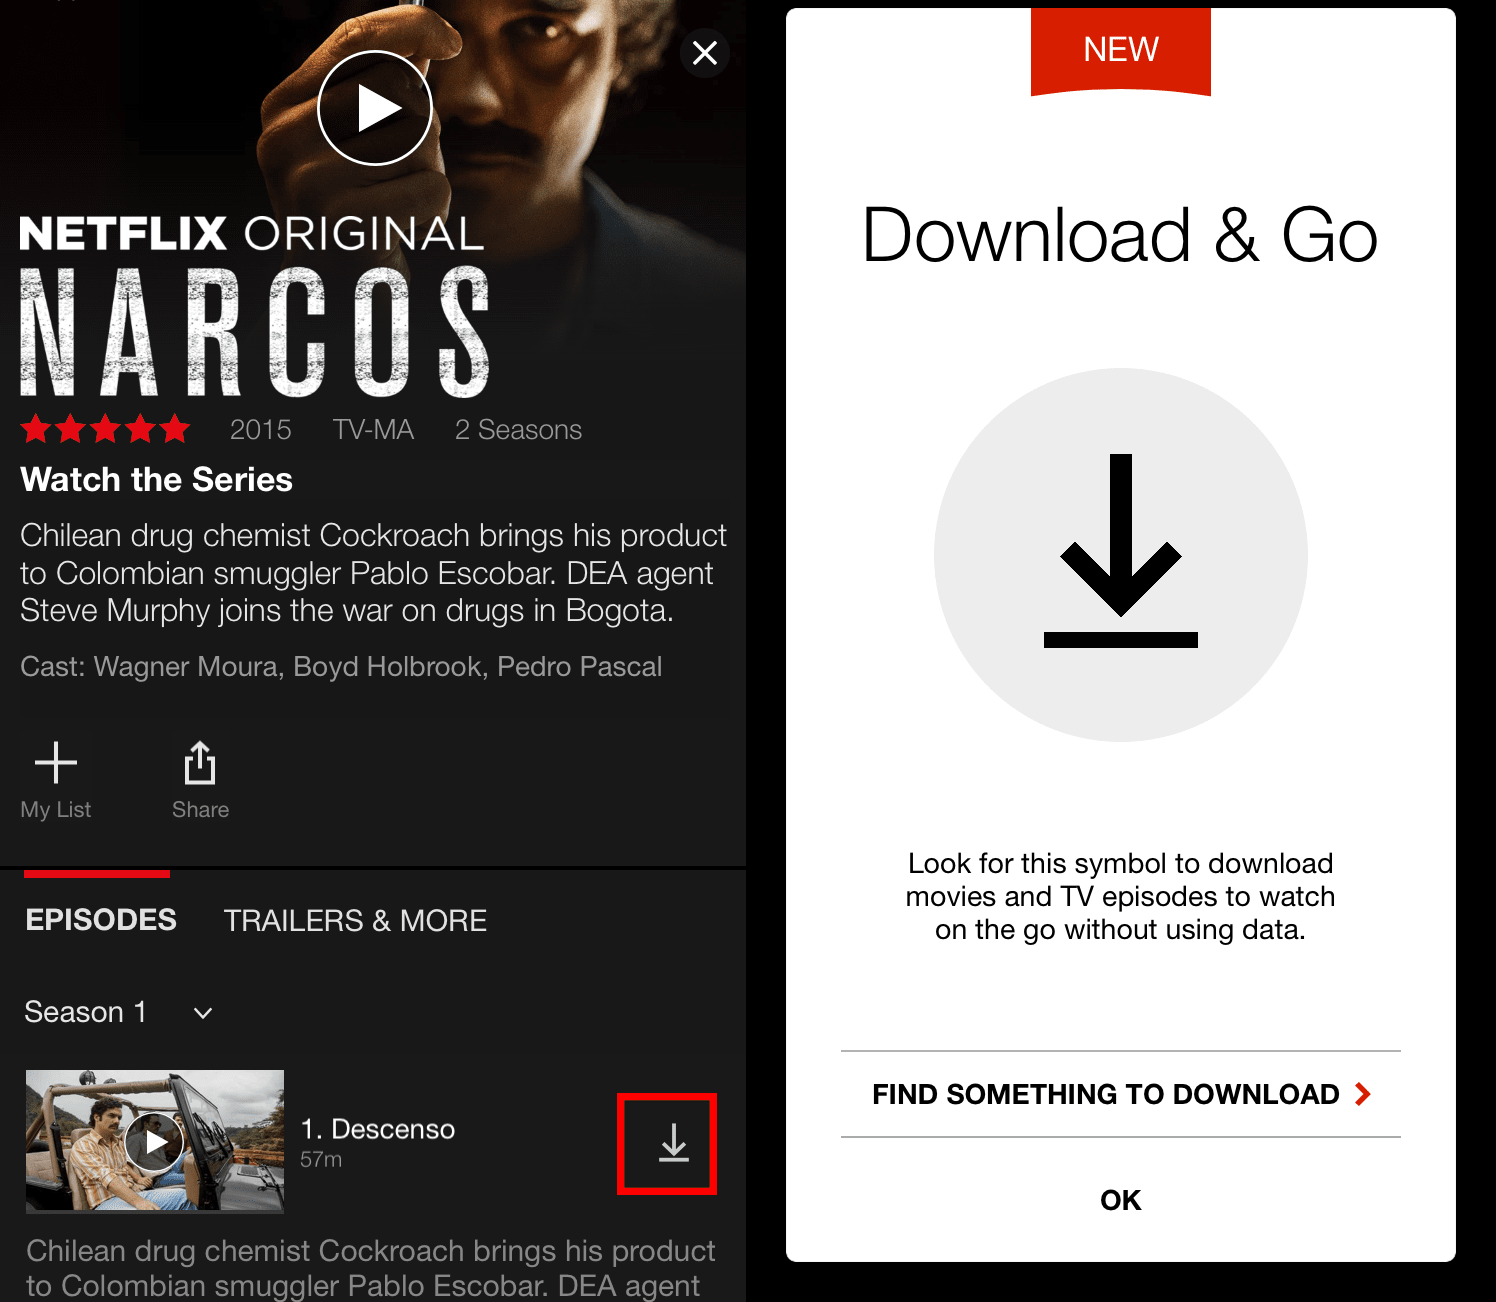 Netflix Will Finally Let Users Download Some Content For